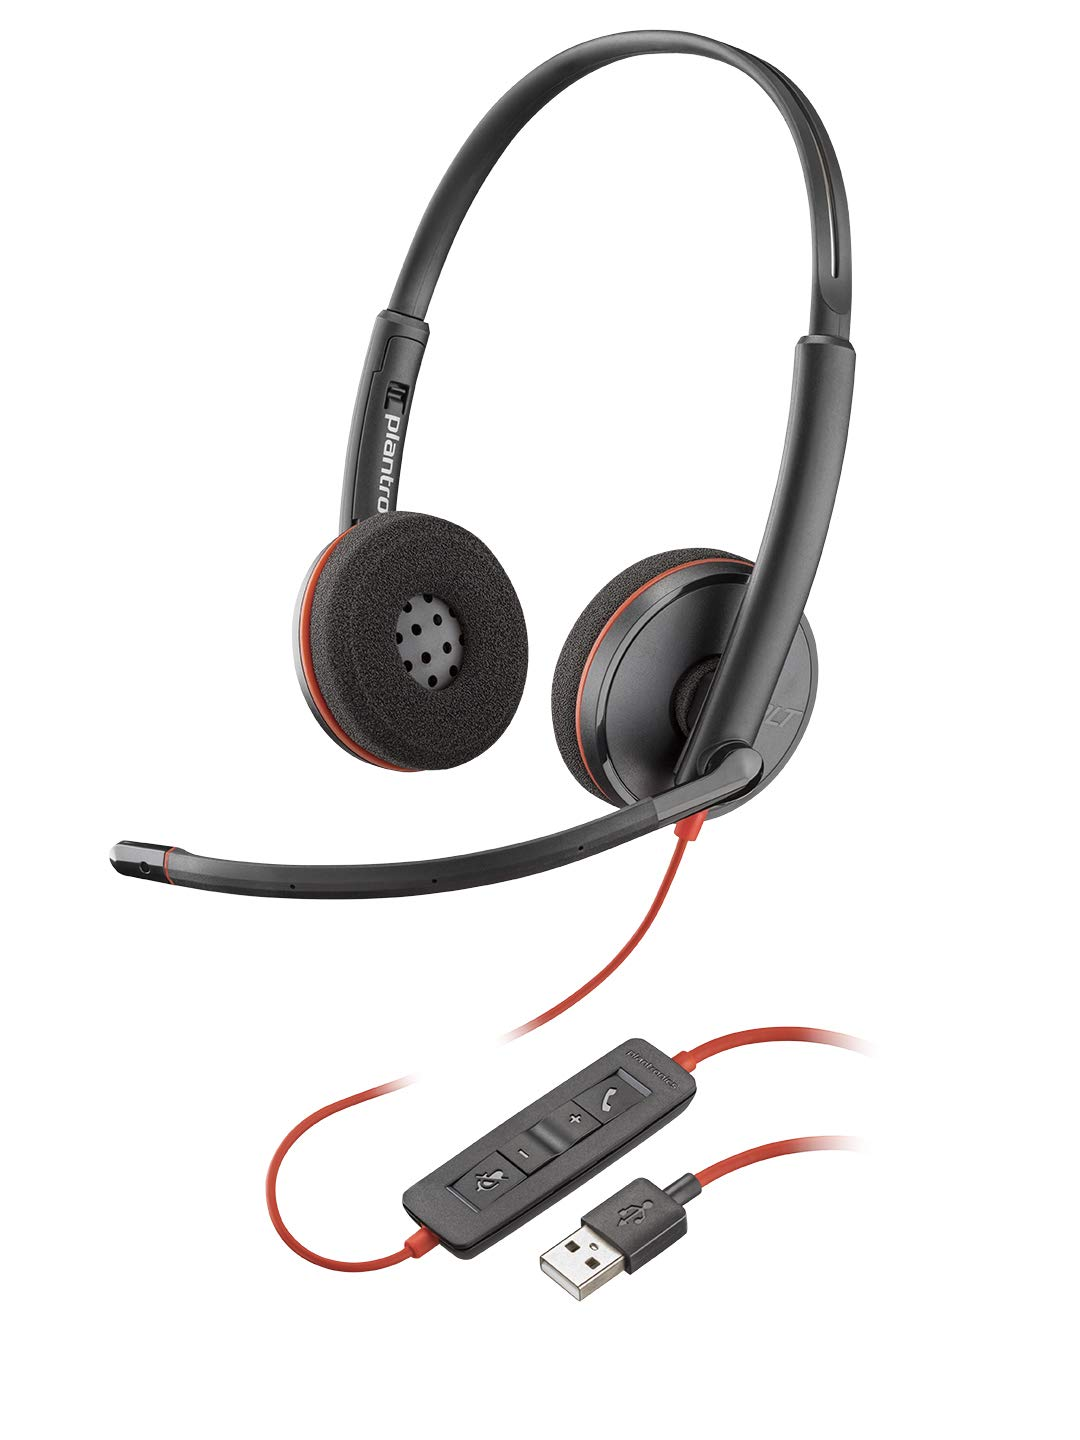 Plantronics Blackwire 3220 Headset Wired